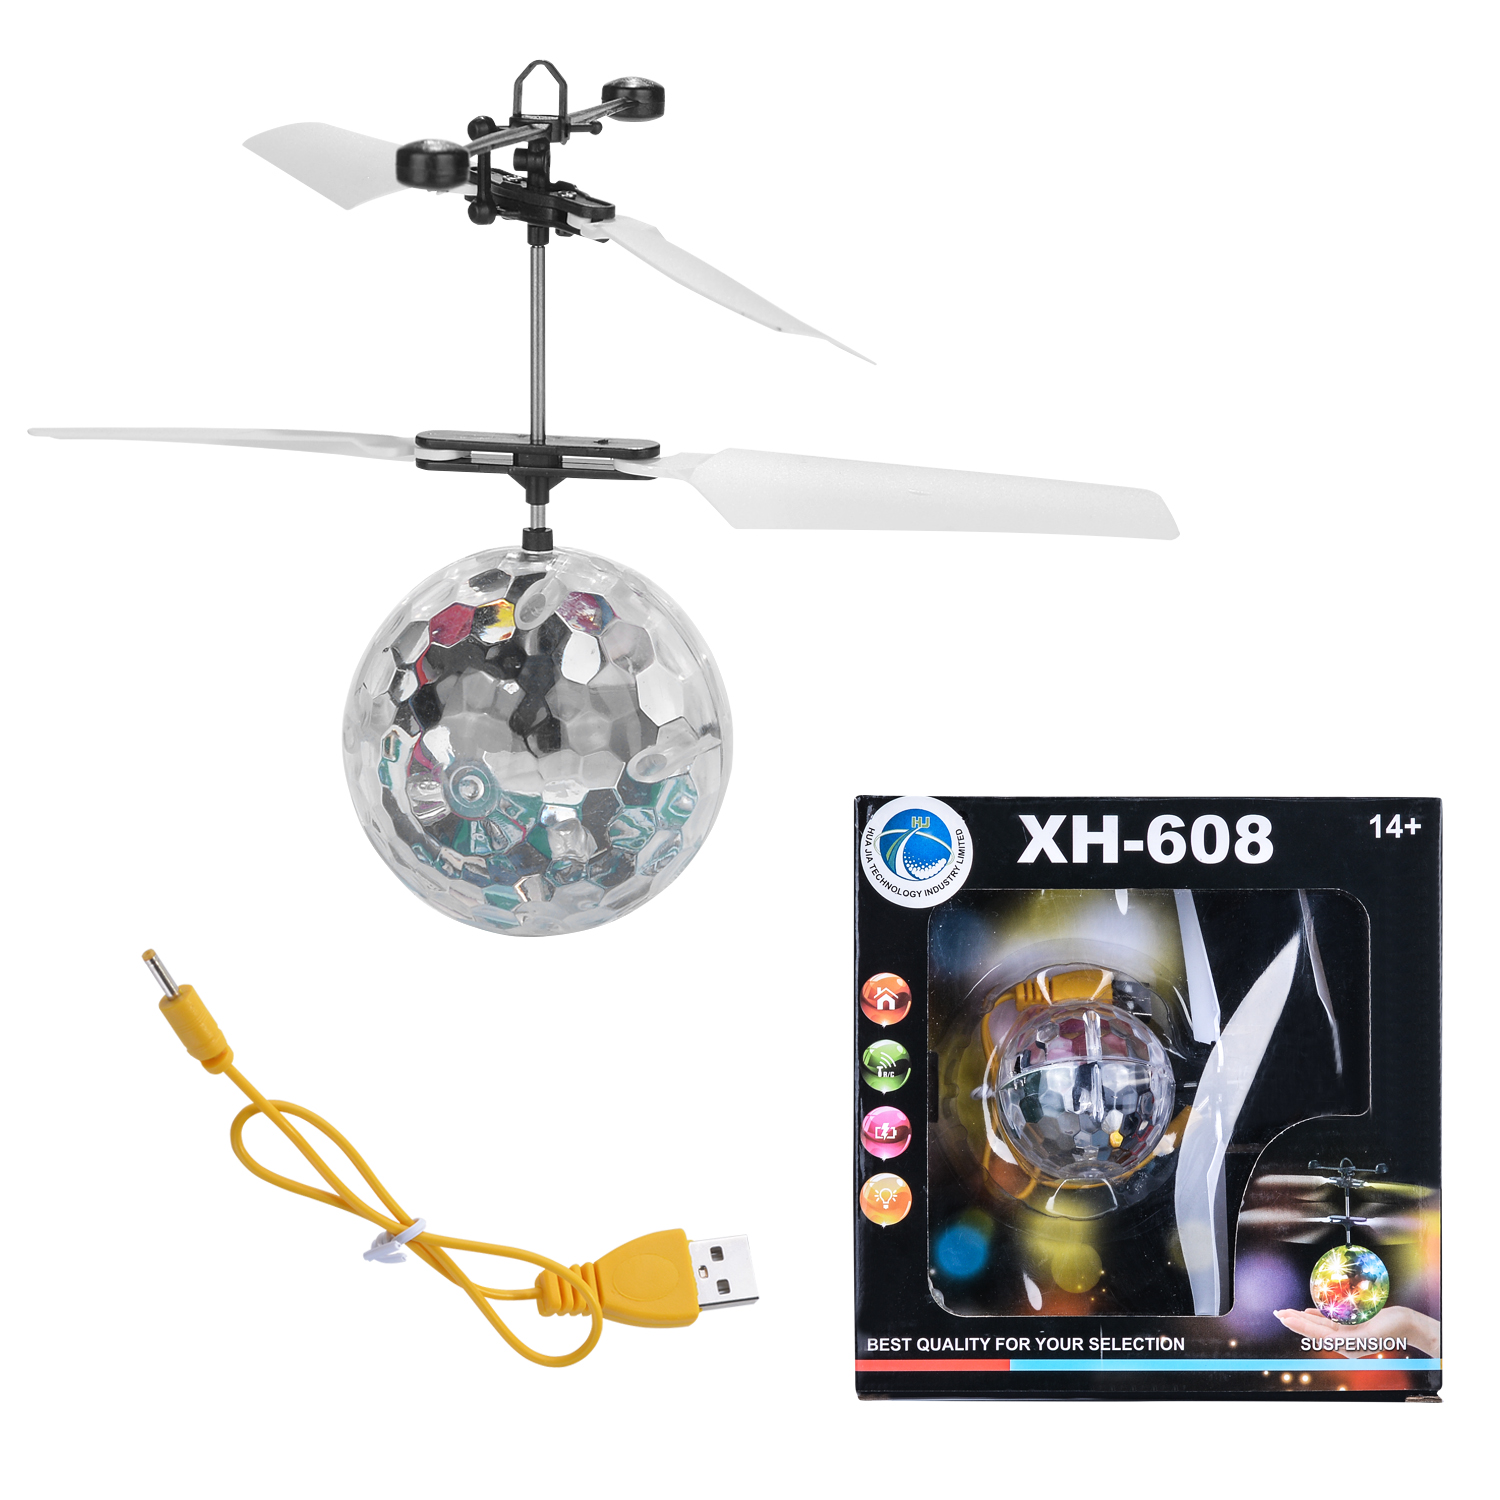 AGPtek Flying Ball Helicopter with Magic Electric Infrared Sensor LED Light Toy Kids Gift Upgraded version